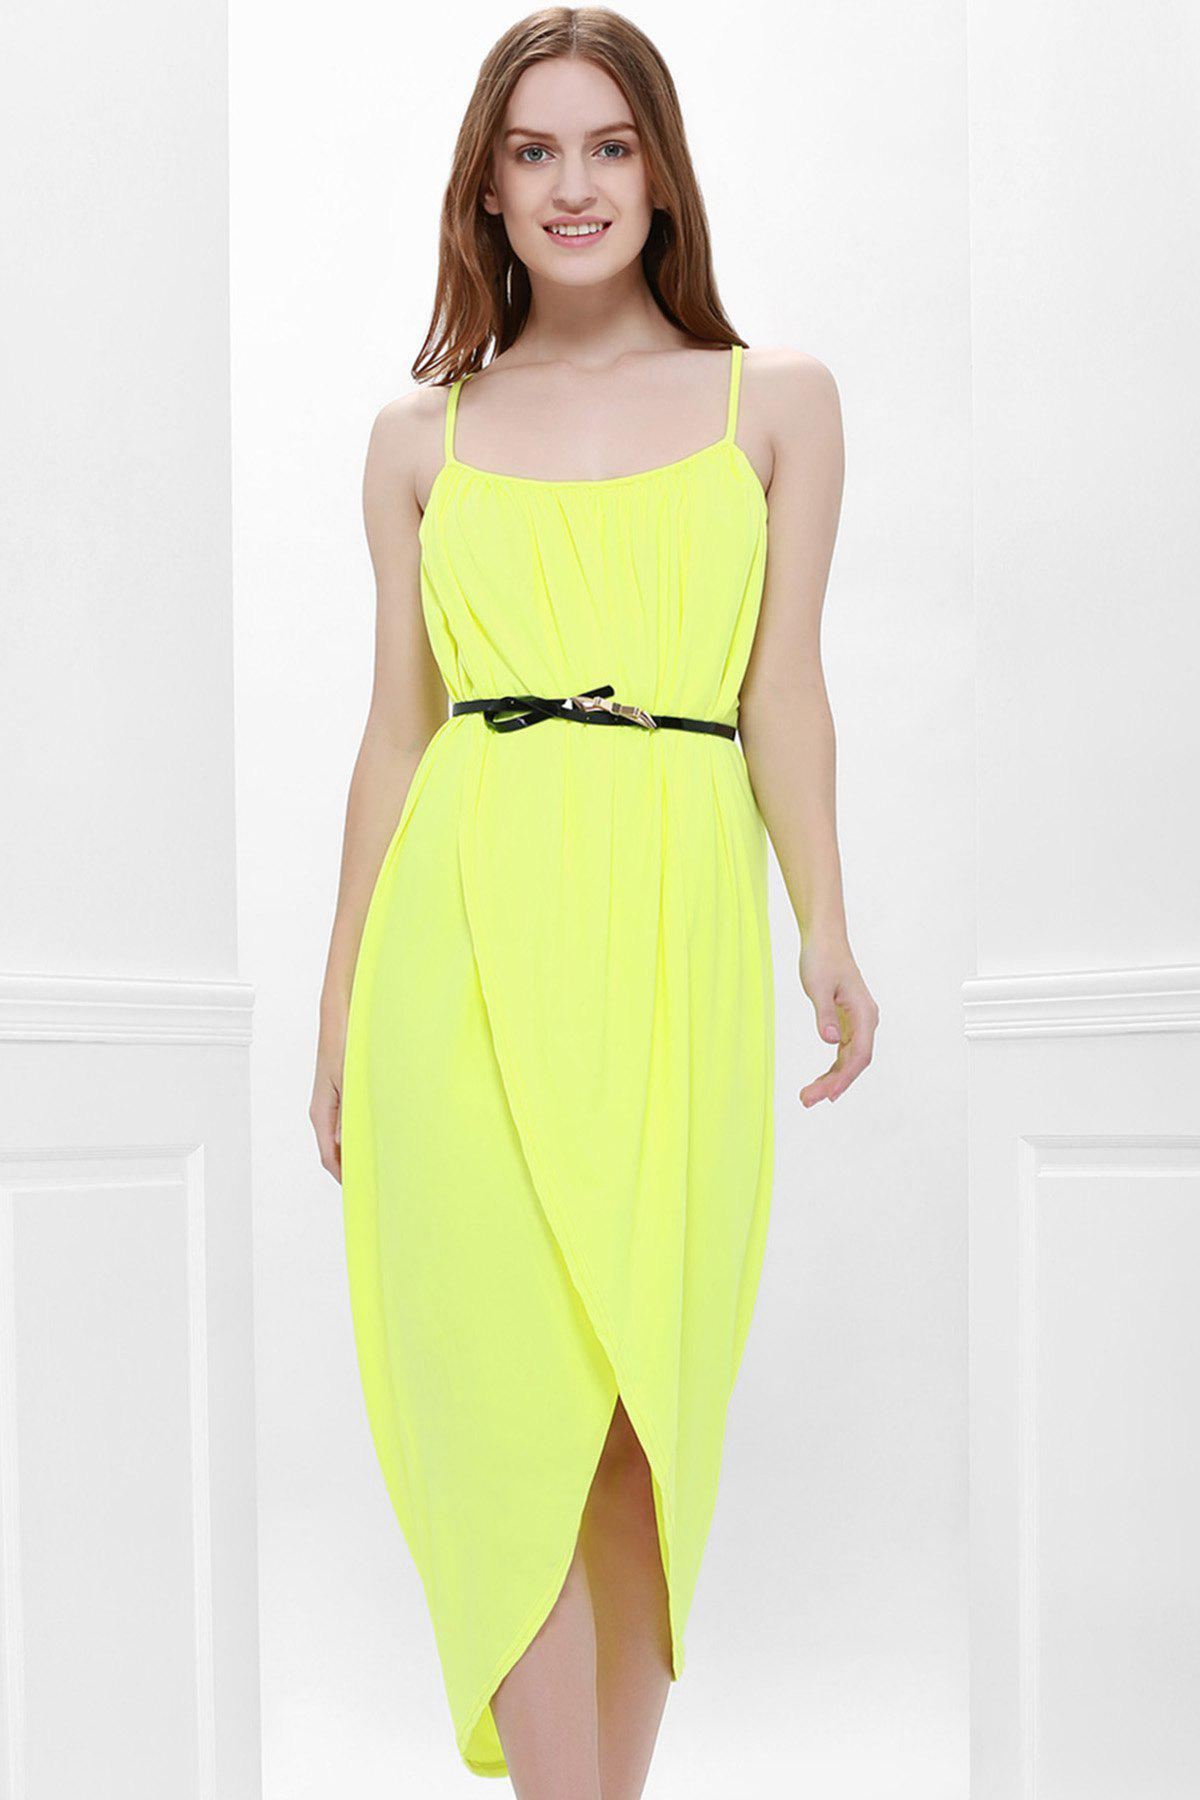 Sexy Spaghetti Strap Sleeveless Furcal Solid Color Women's Dress - YELLOW M